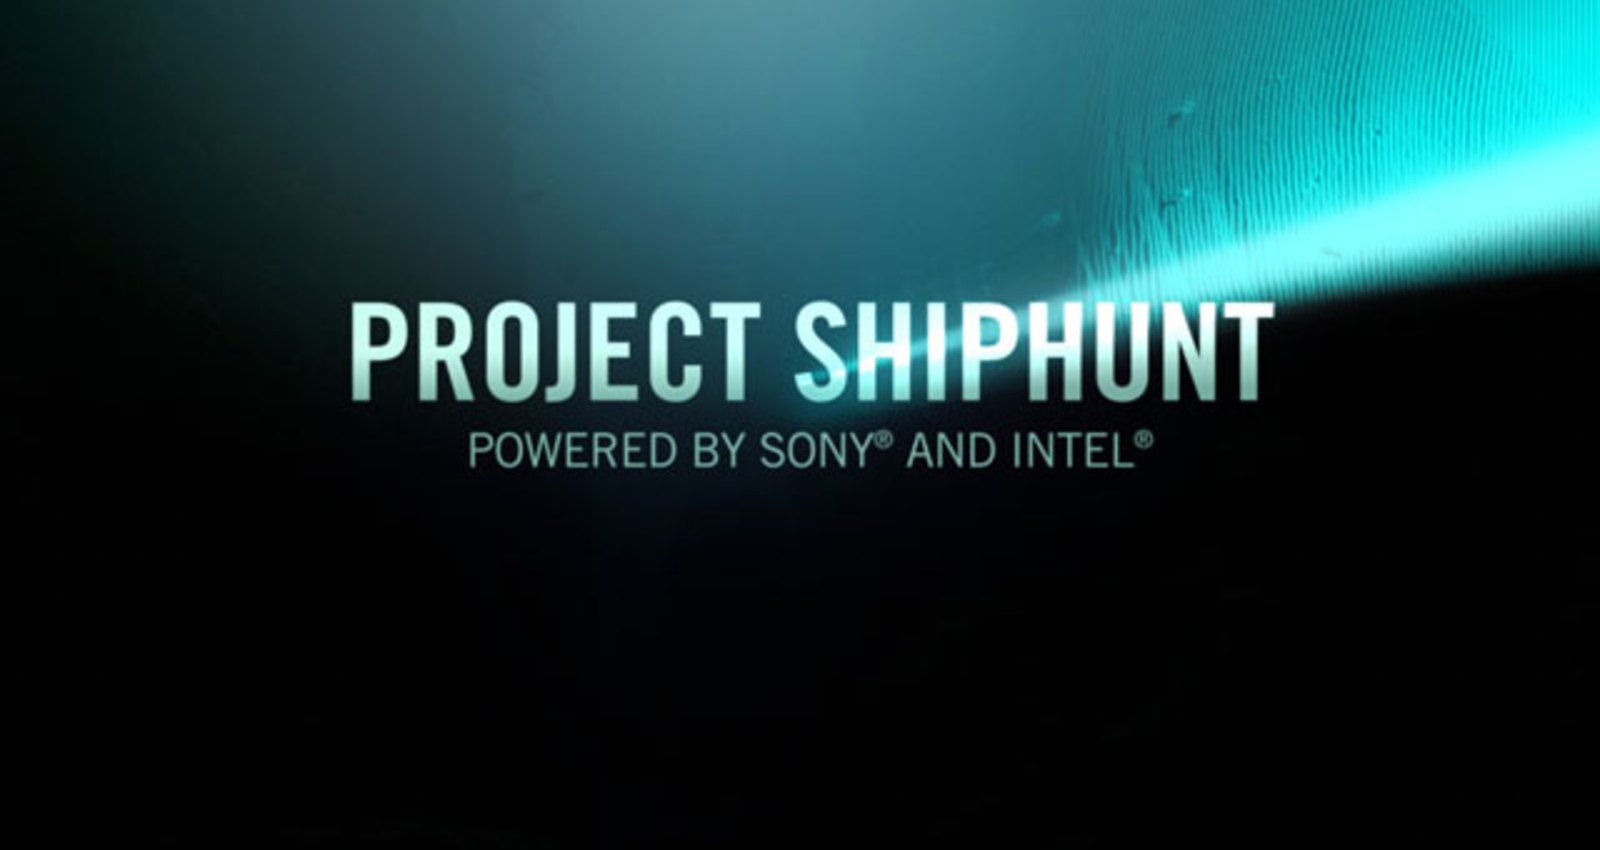 Project Shiphunt